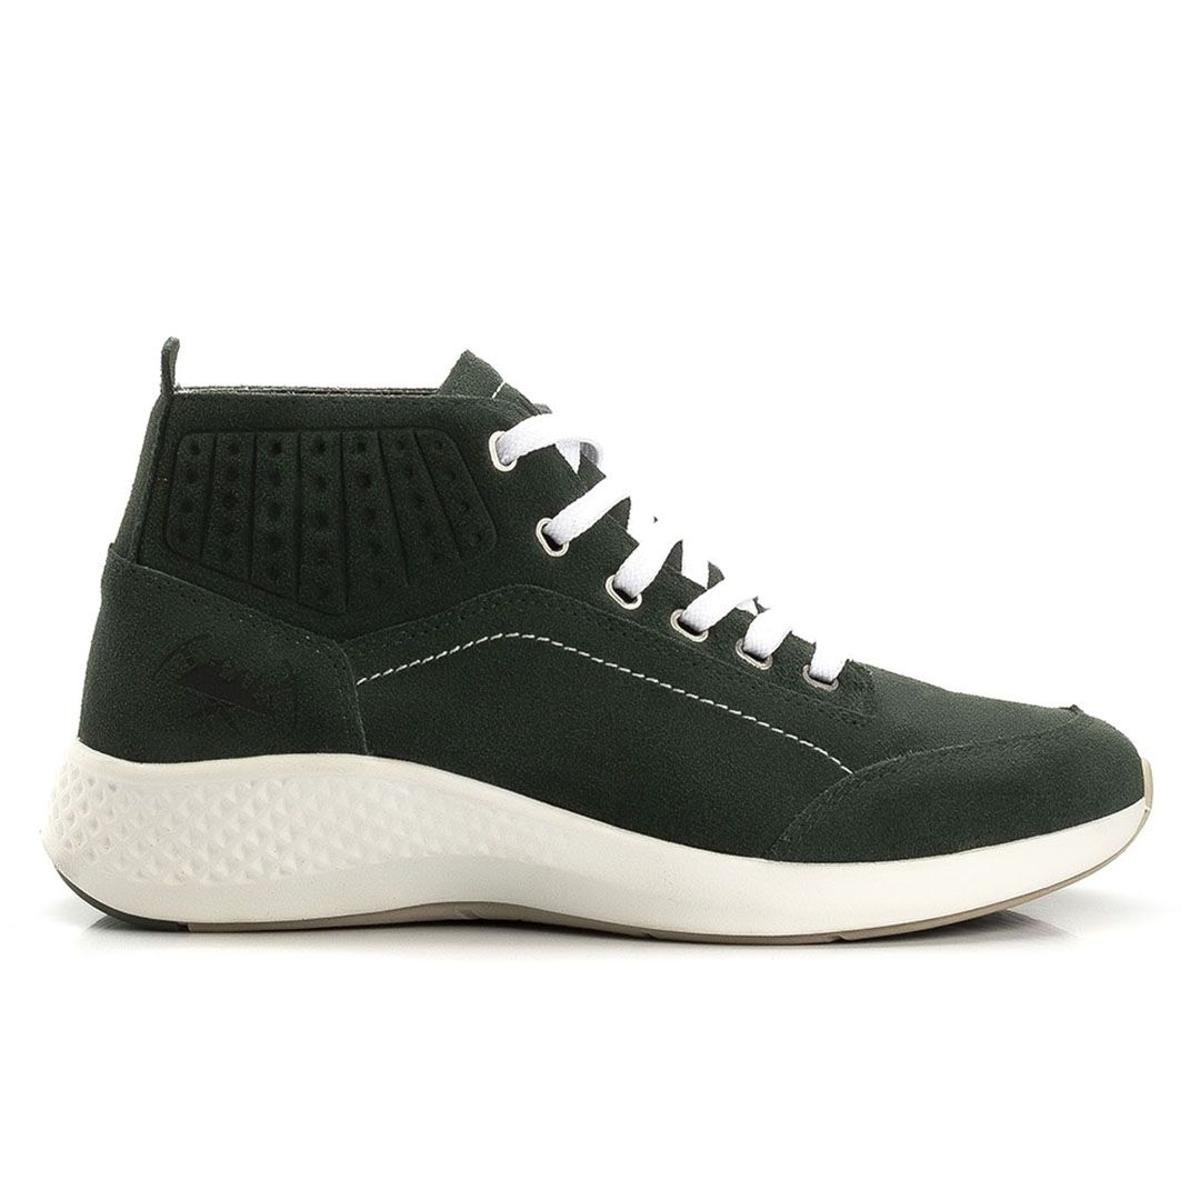 Tênis Jhon Boots Sneakers Masculino - Verde